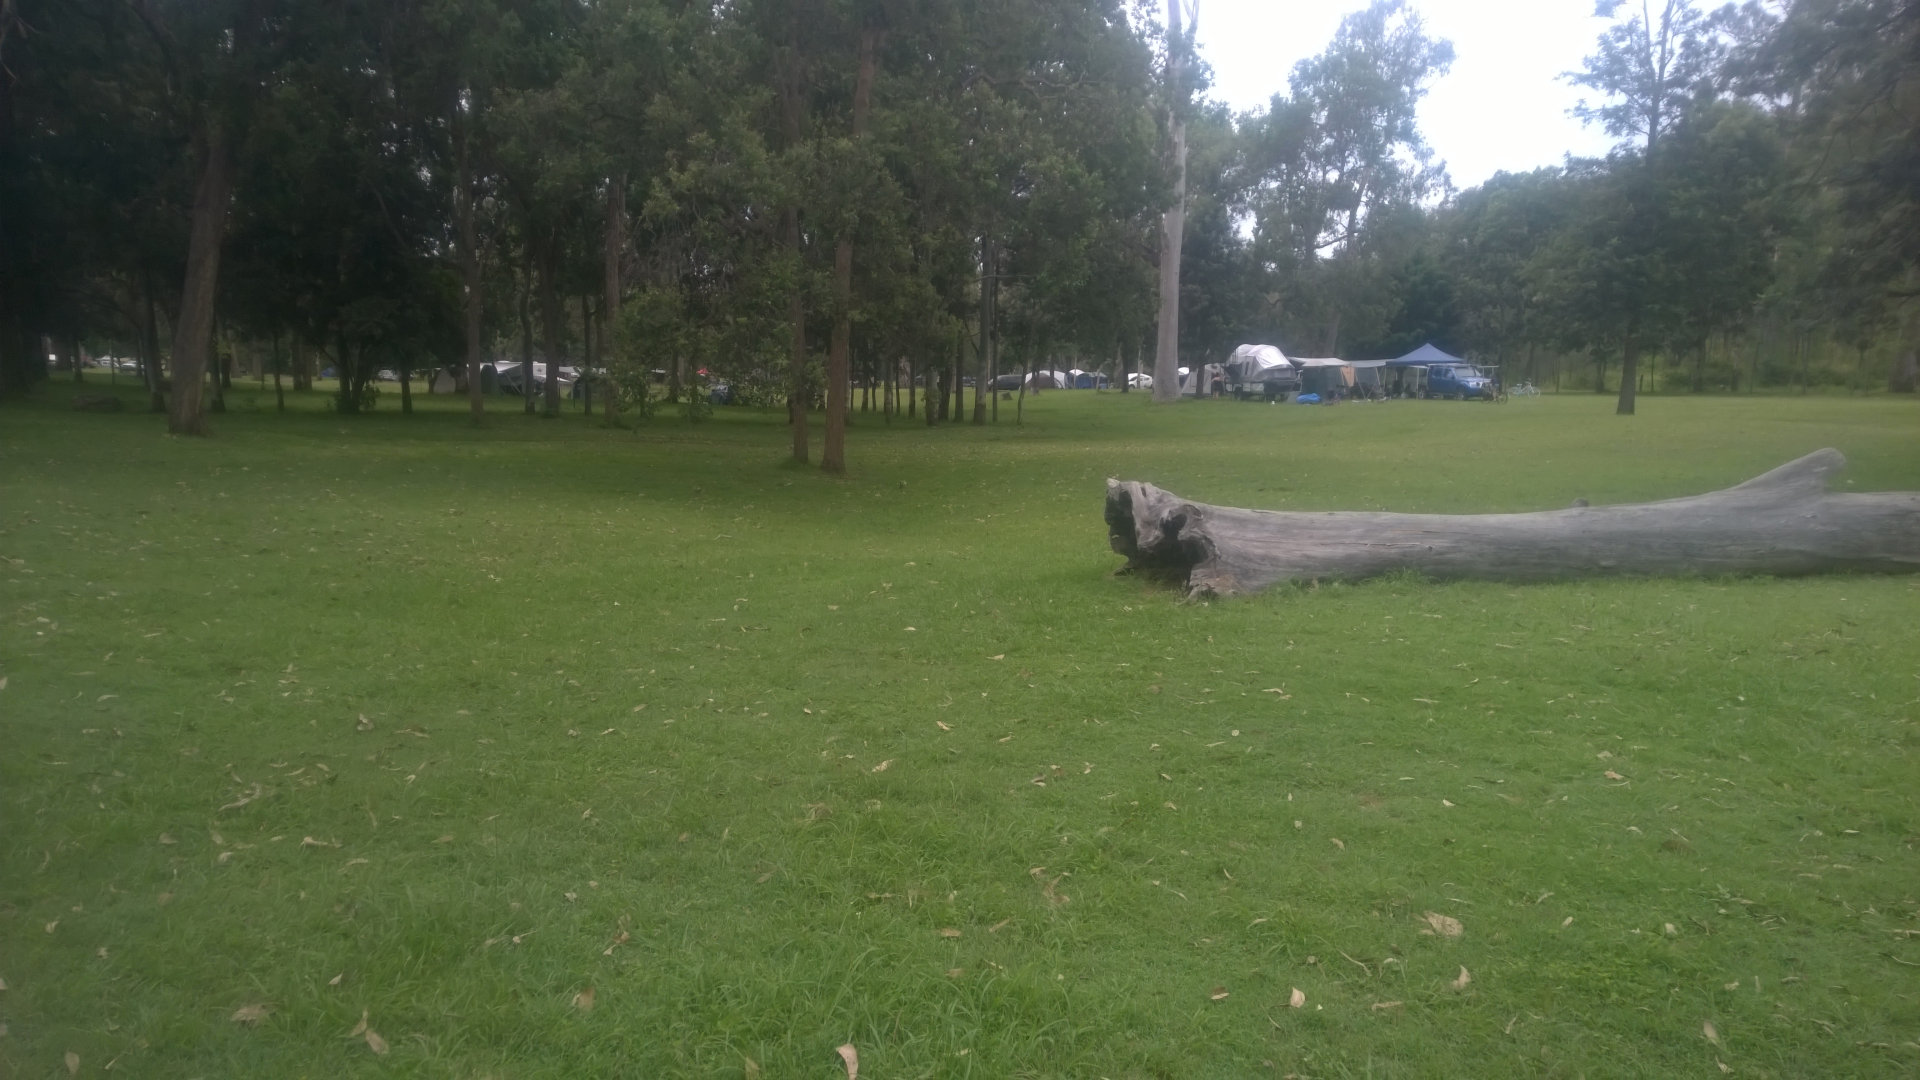 Grassy camping ground at Bigriggen Park, a bush camping ground in the Scenic Rim between Boonah and Rathdowney. It offers beautifully kept grassy camp grounds, and fresh water flowing along the Logan River running beside it